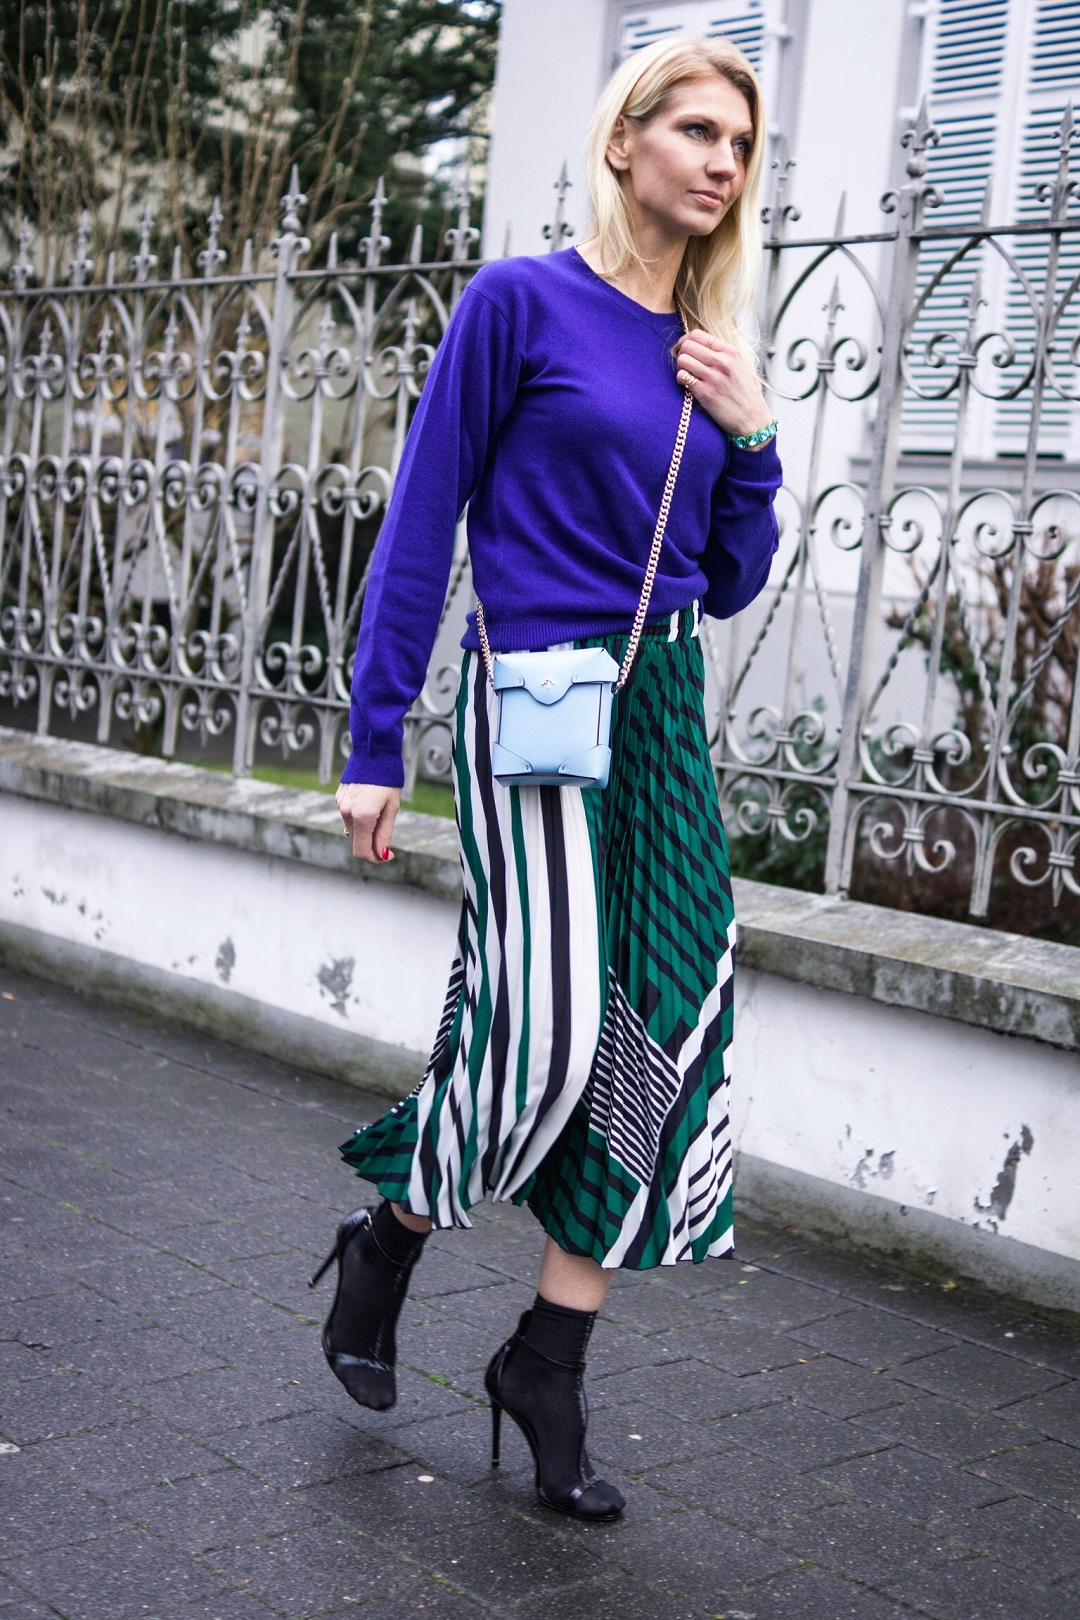 Cashmere sweater by Ferramosca and striped Mango skirt